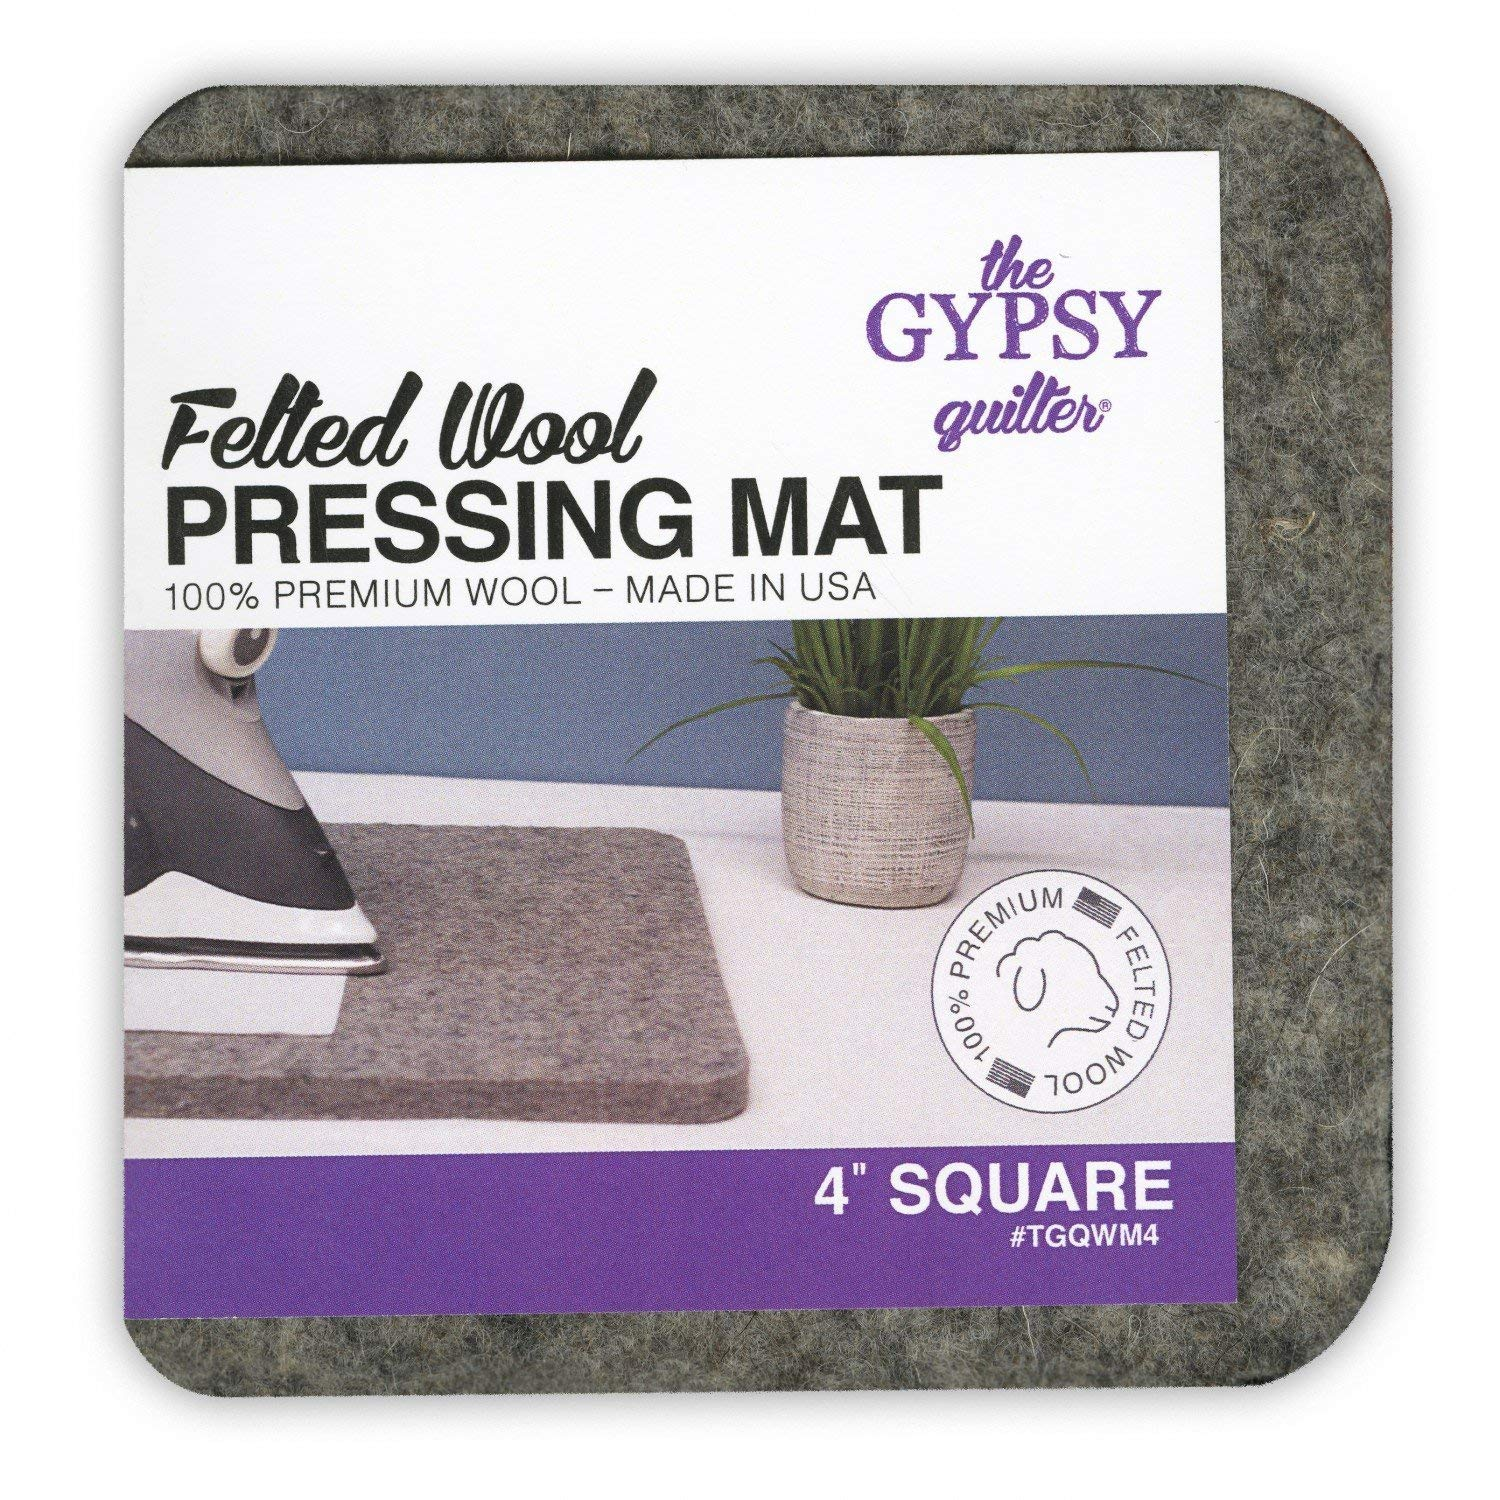 Gypsy Quilter Felted Wool Pressing Mat 8.5x8.5x0.5 Made in USA